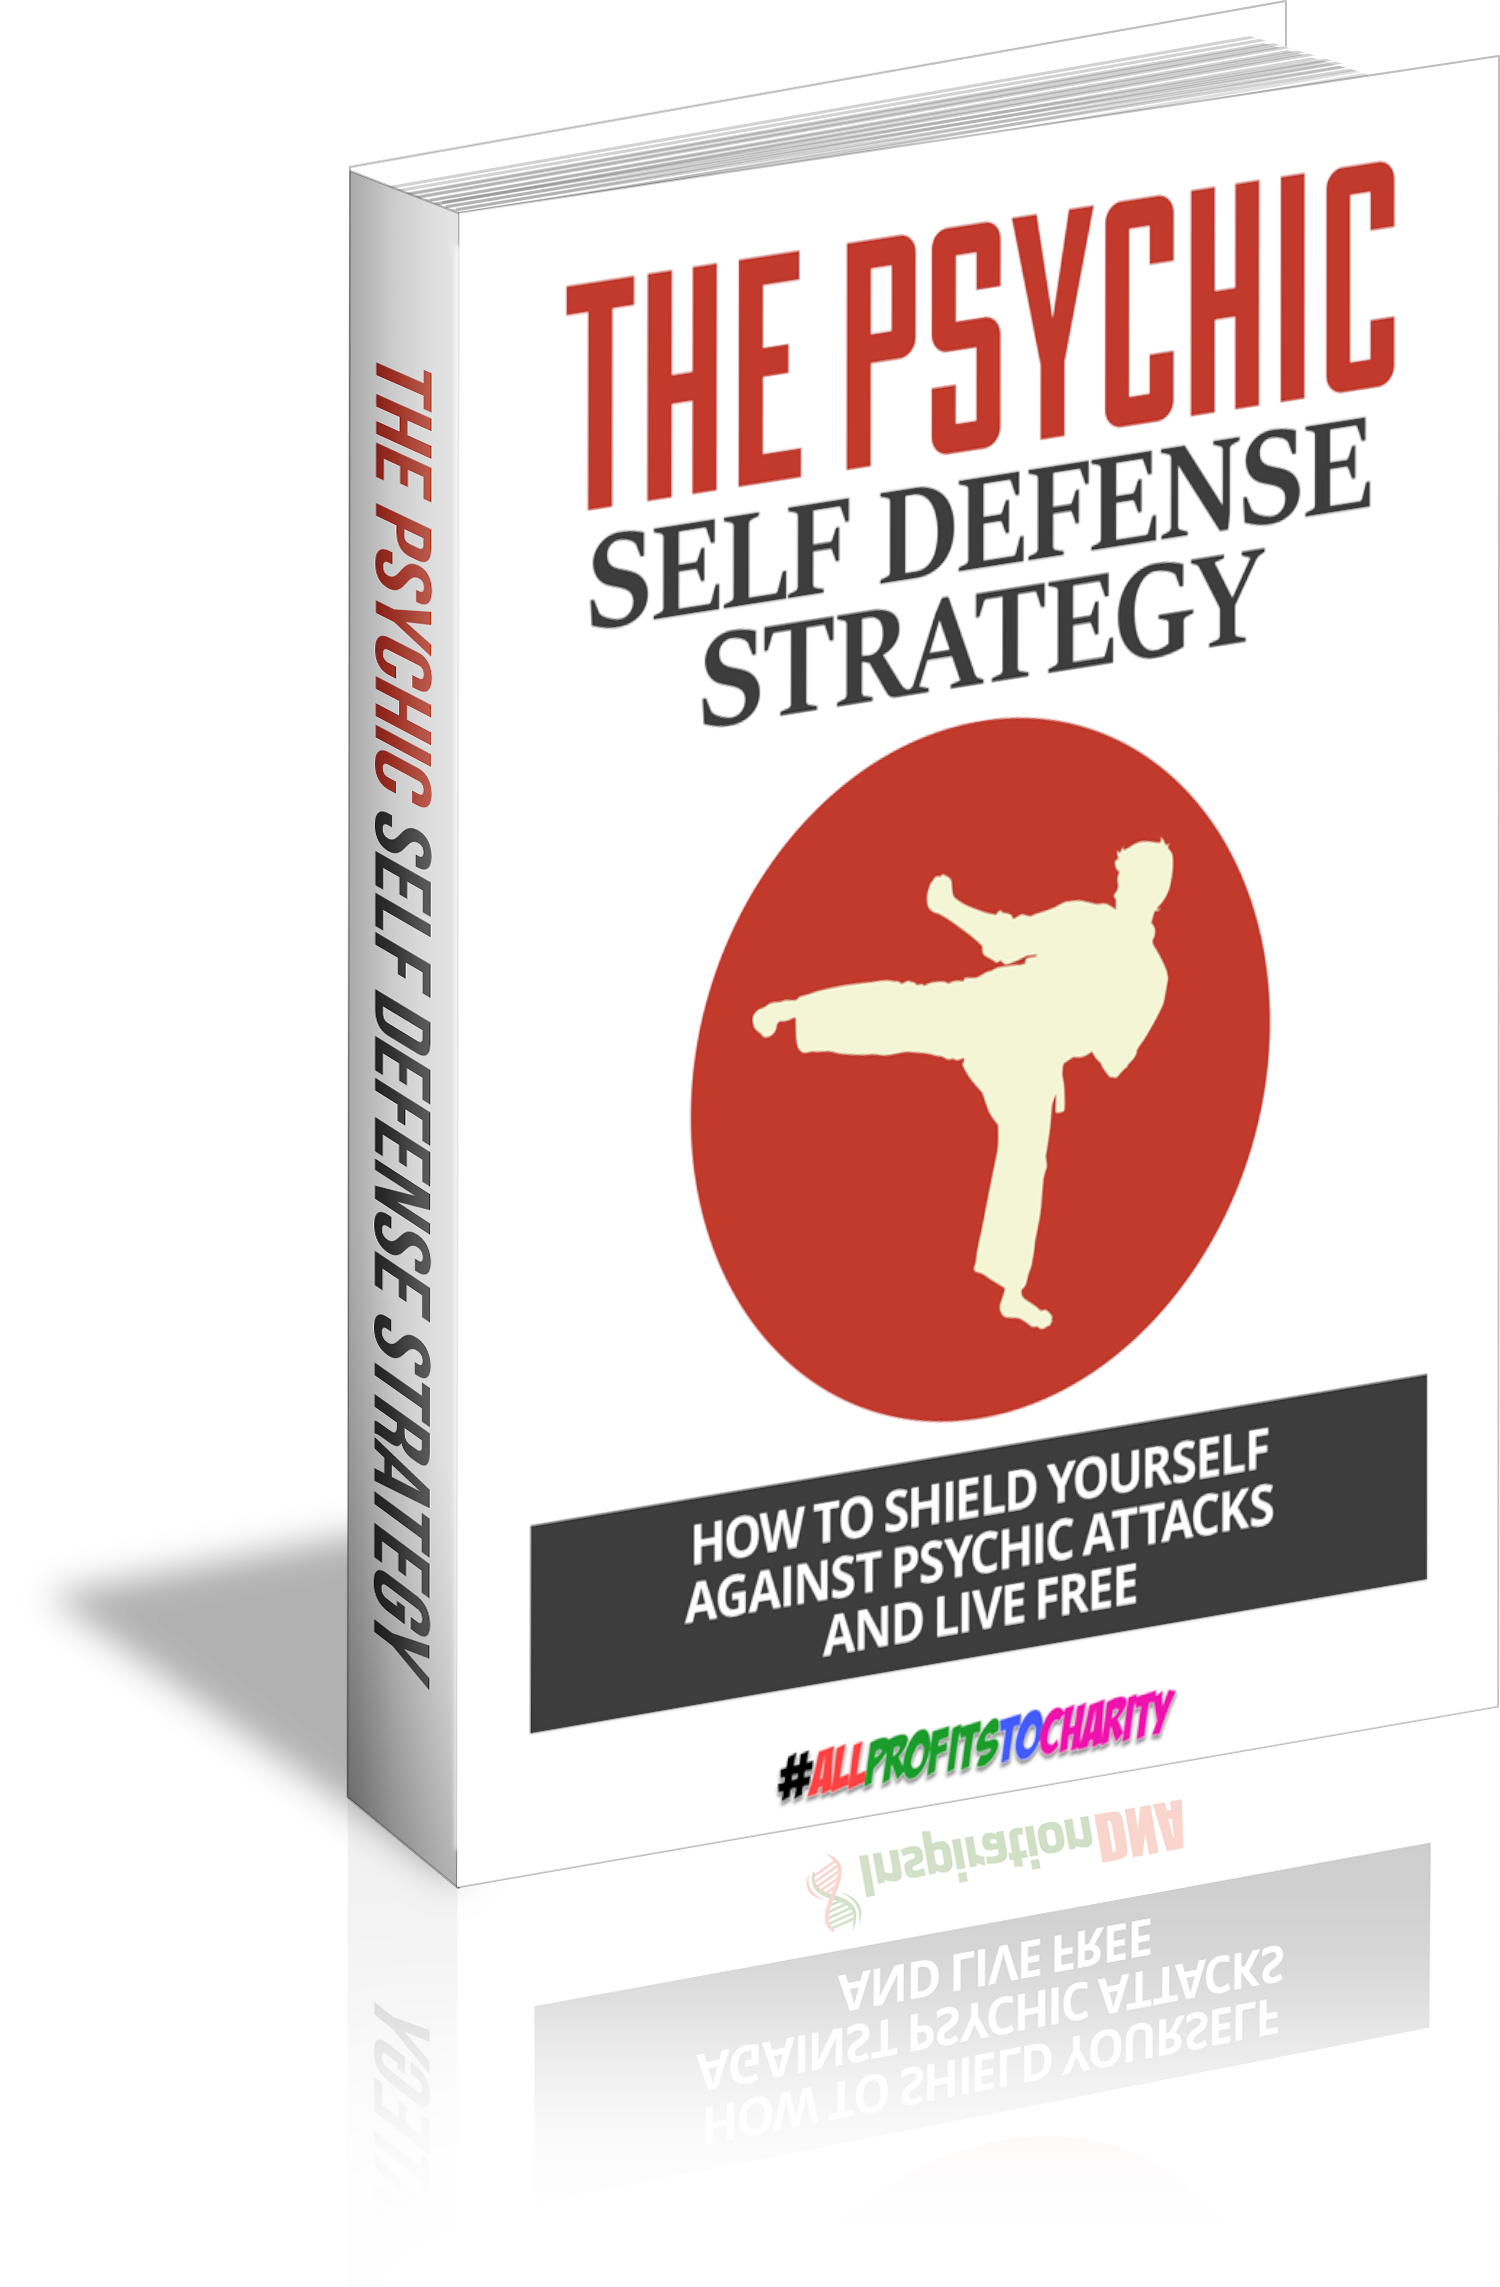 The Psychic Self Defense Strategy cover